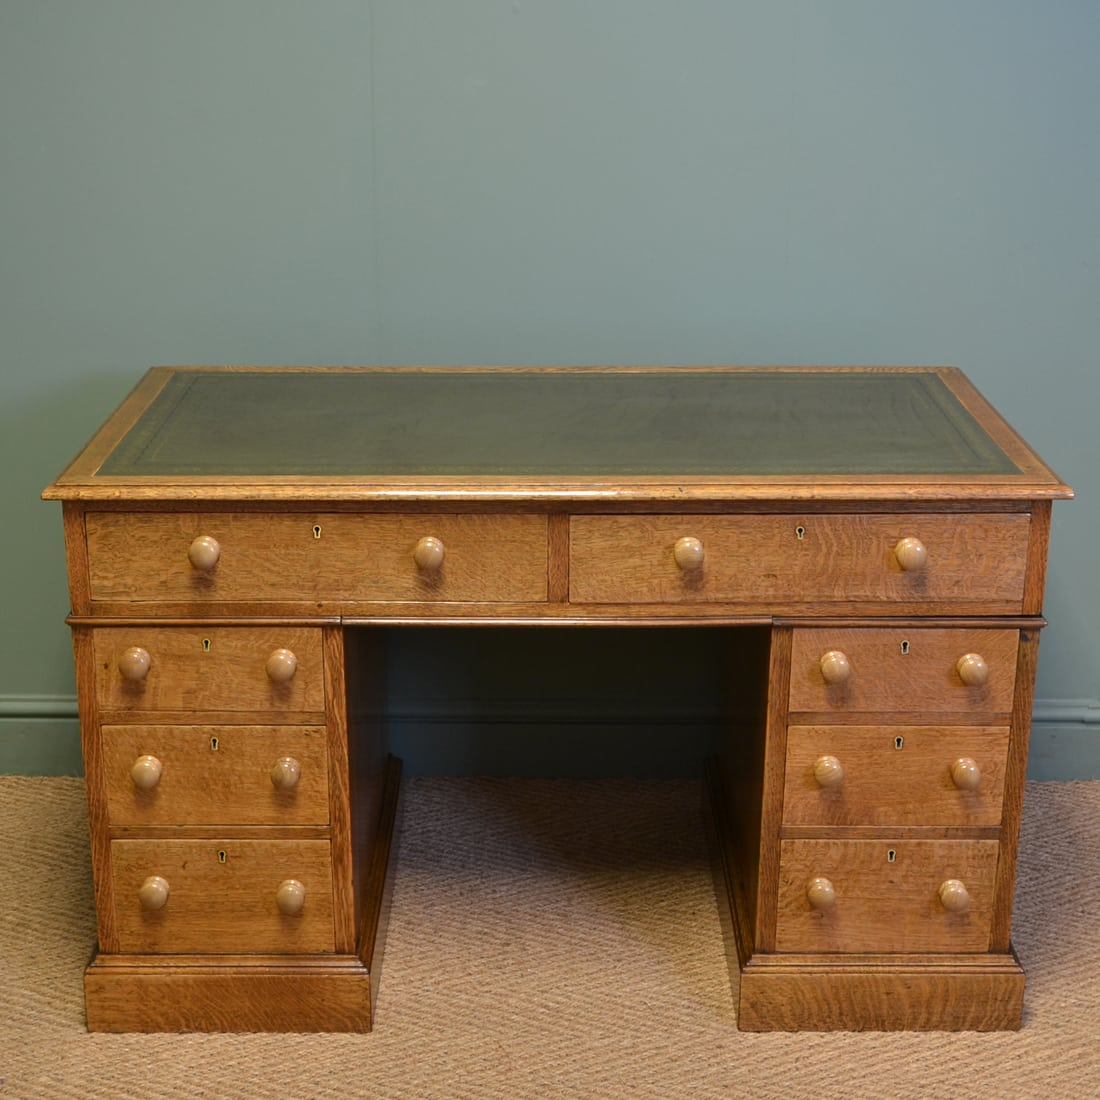 Stunning Golden Oak Edwardian Antique Pedestal Desk